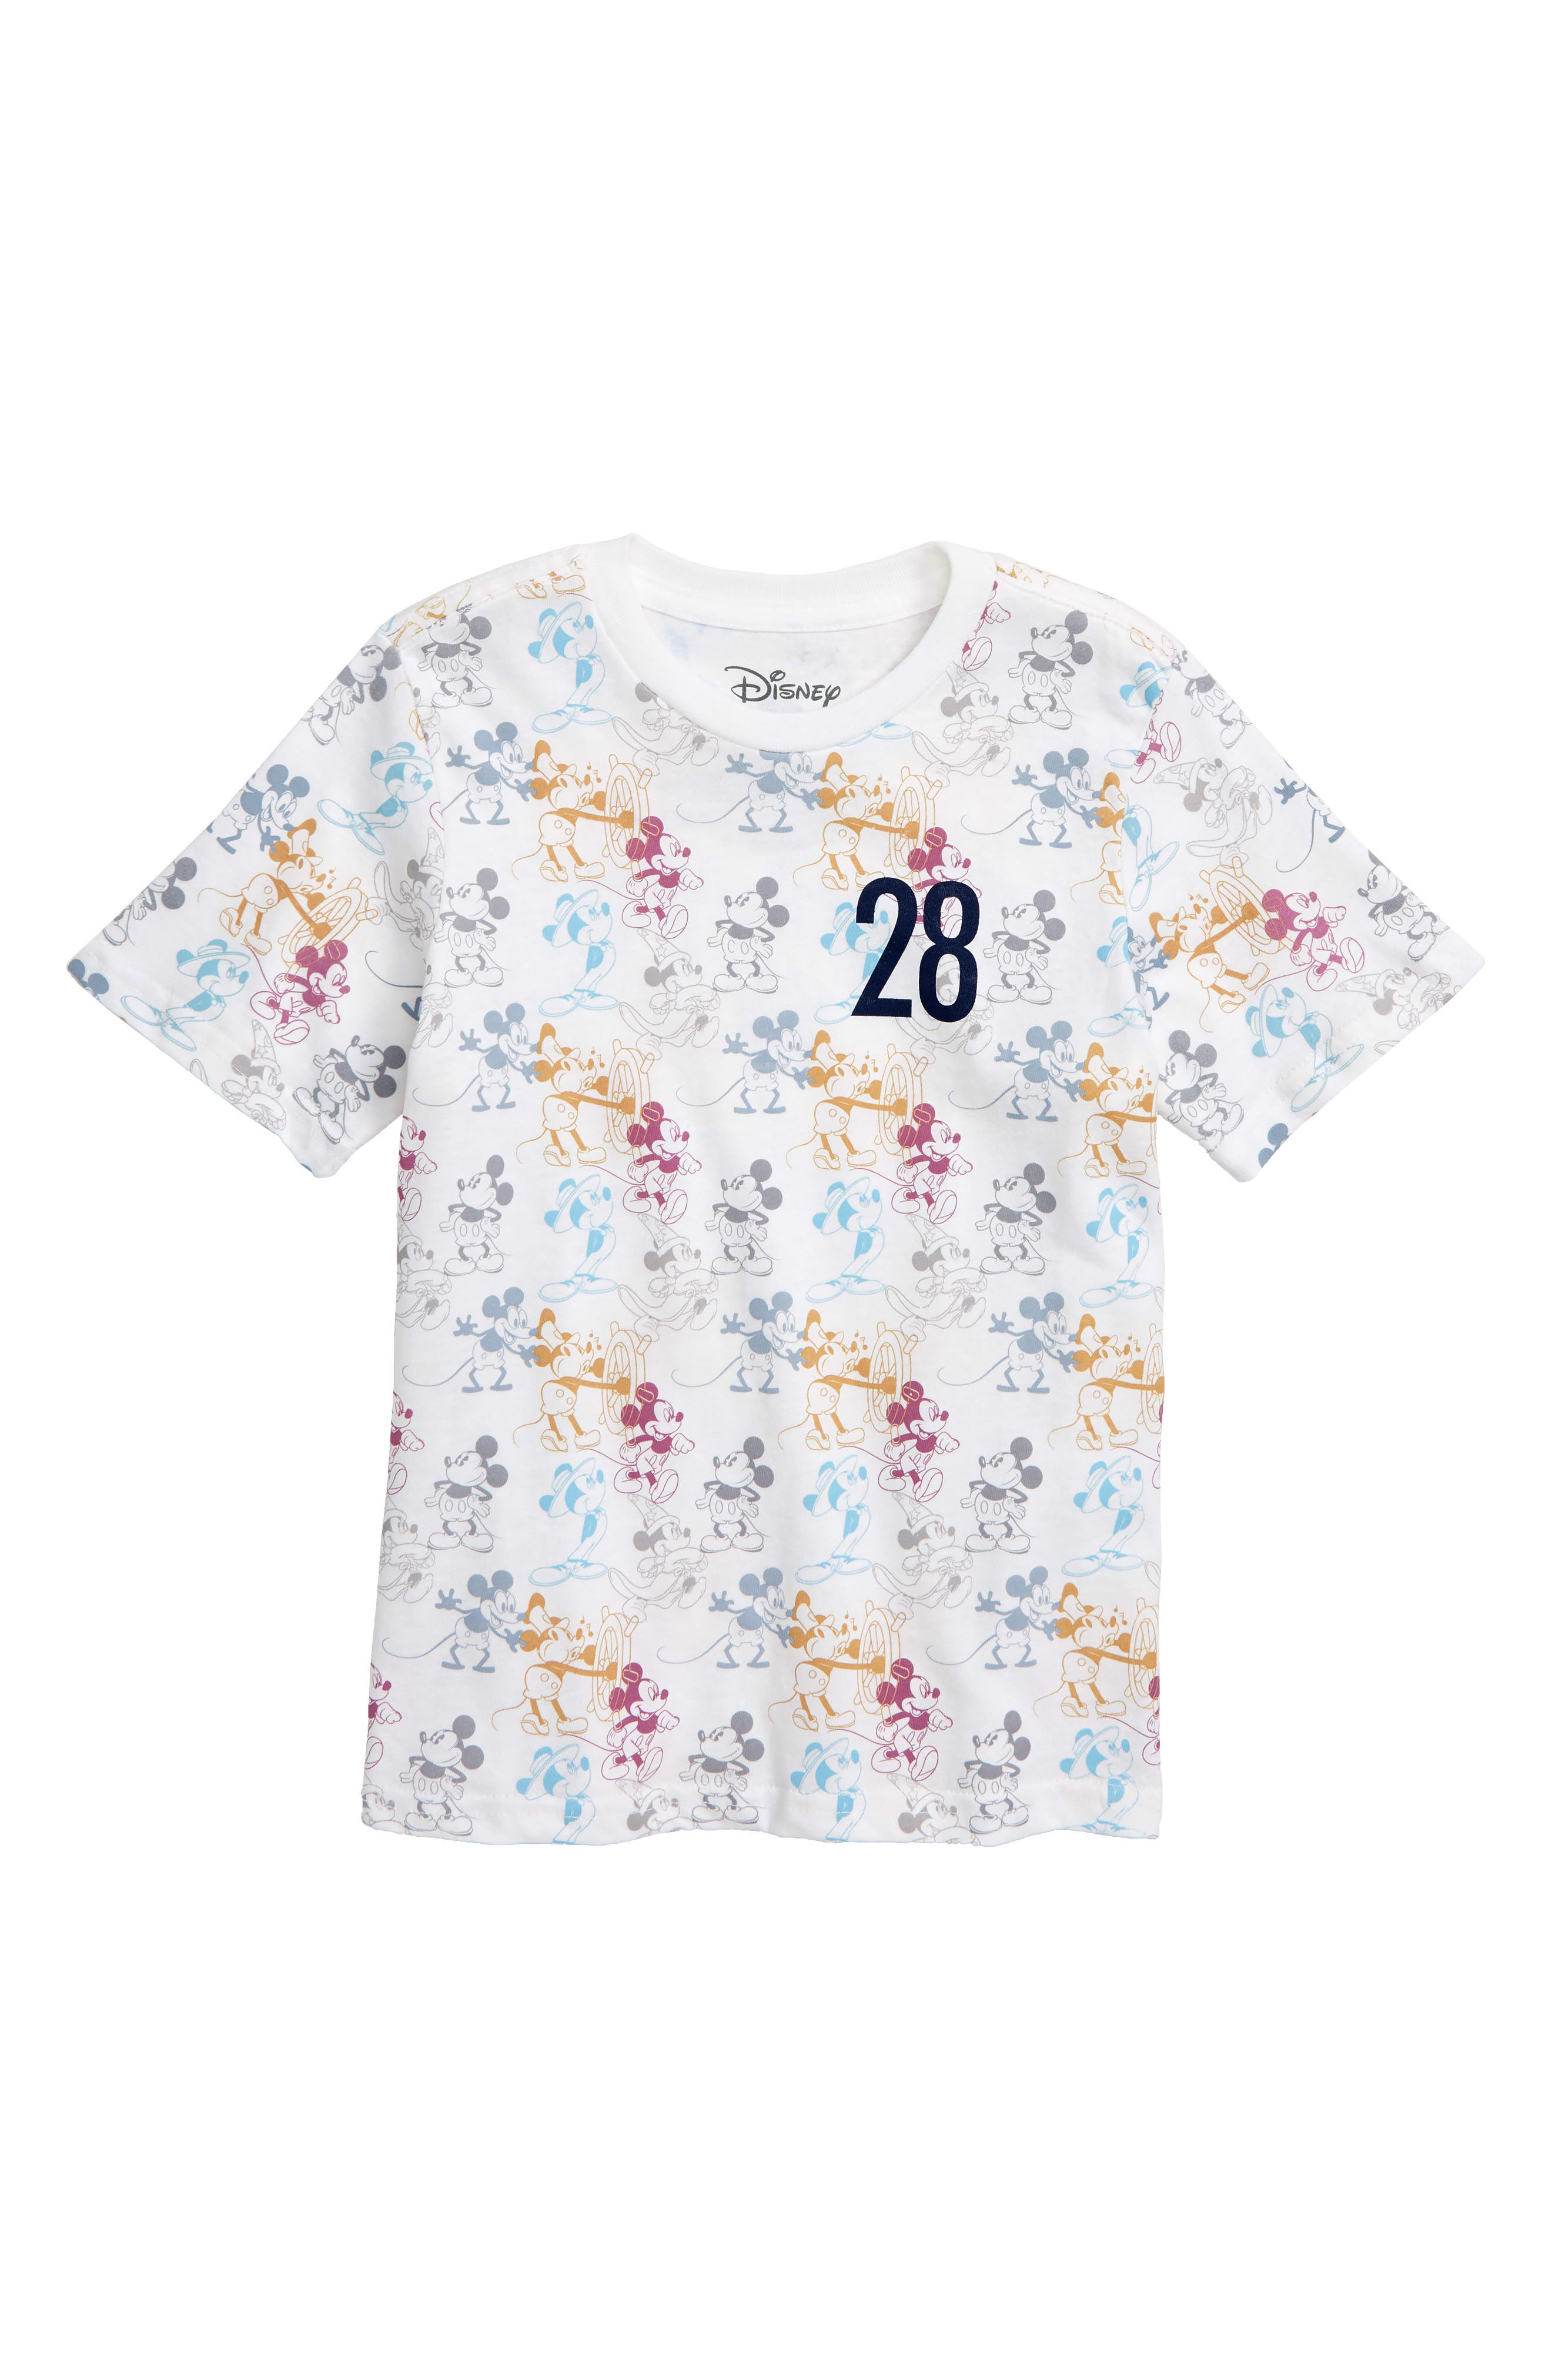 Disney<sup>®</sup> Mickey Mouse T-Shirt,                         Main,                         color, 100